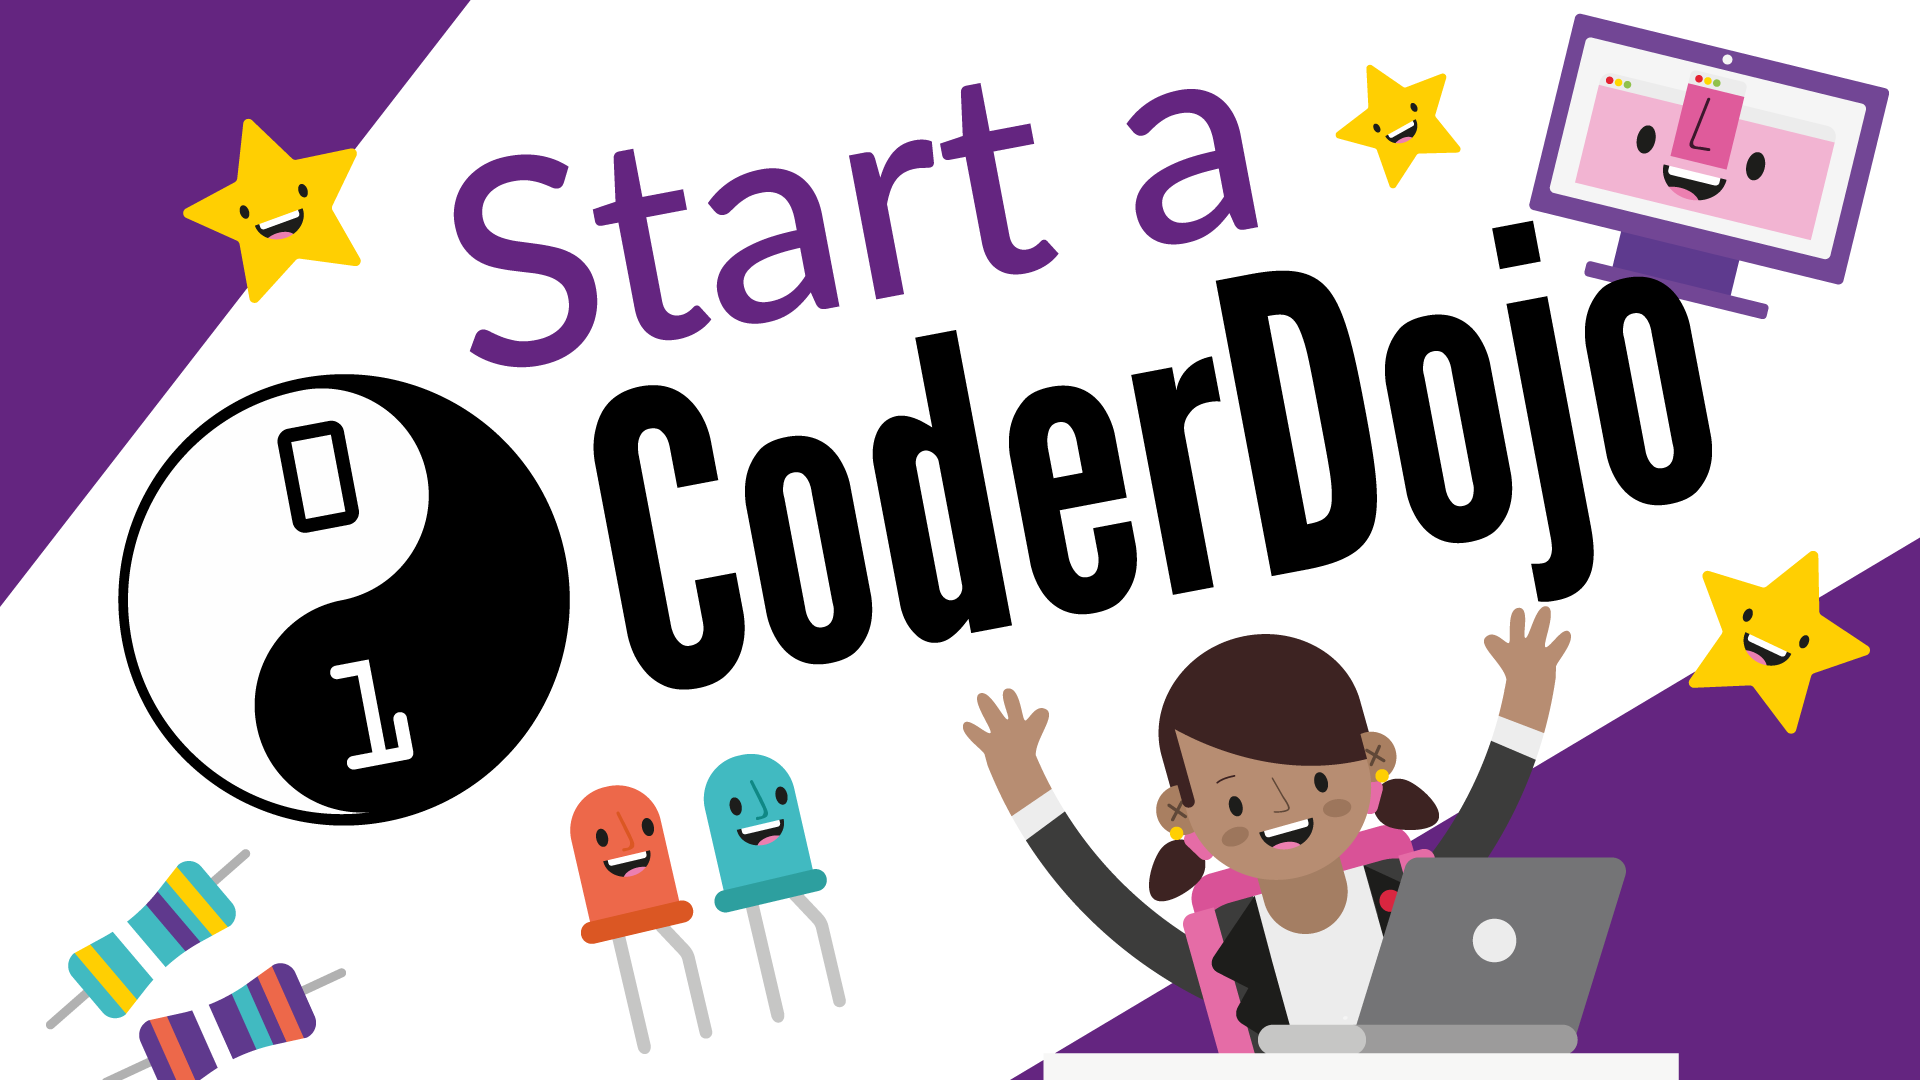 Start a CoderDojo with our free online training